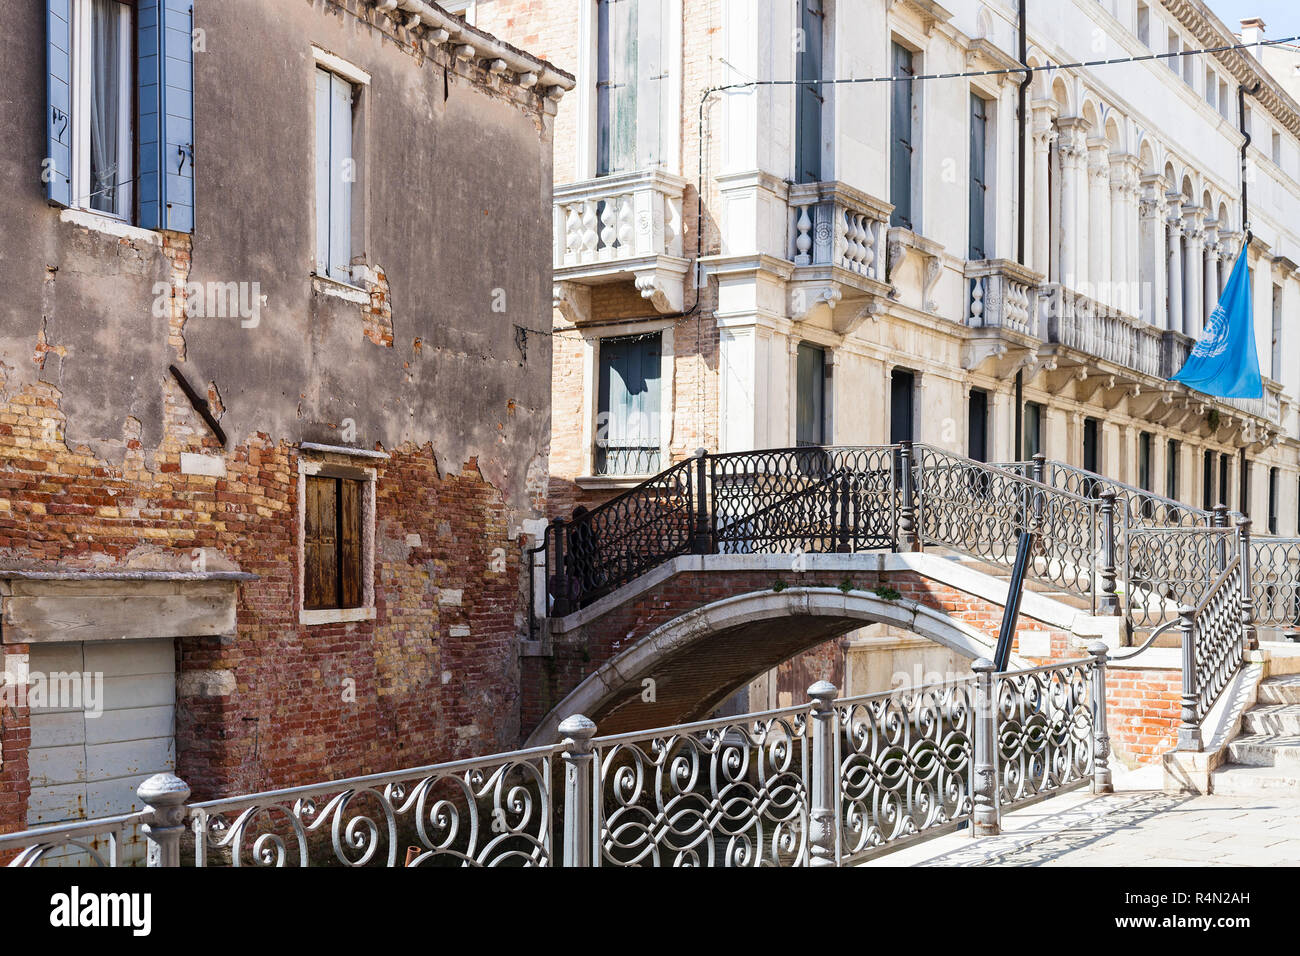 bridge over canal Rio de San severo in Venice Stock Photo